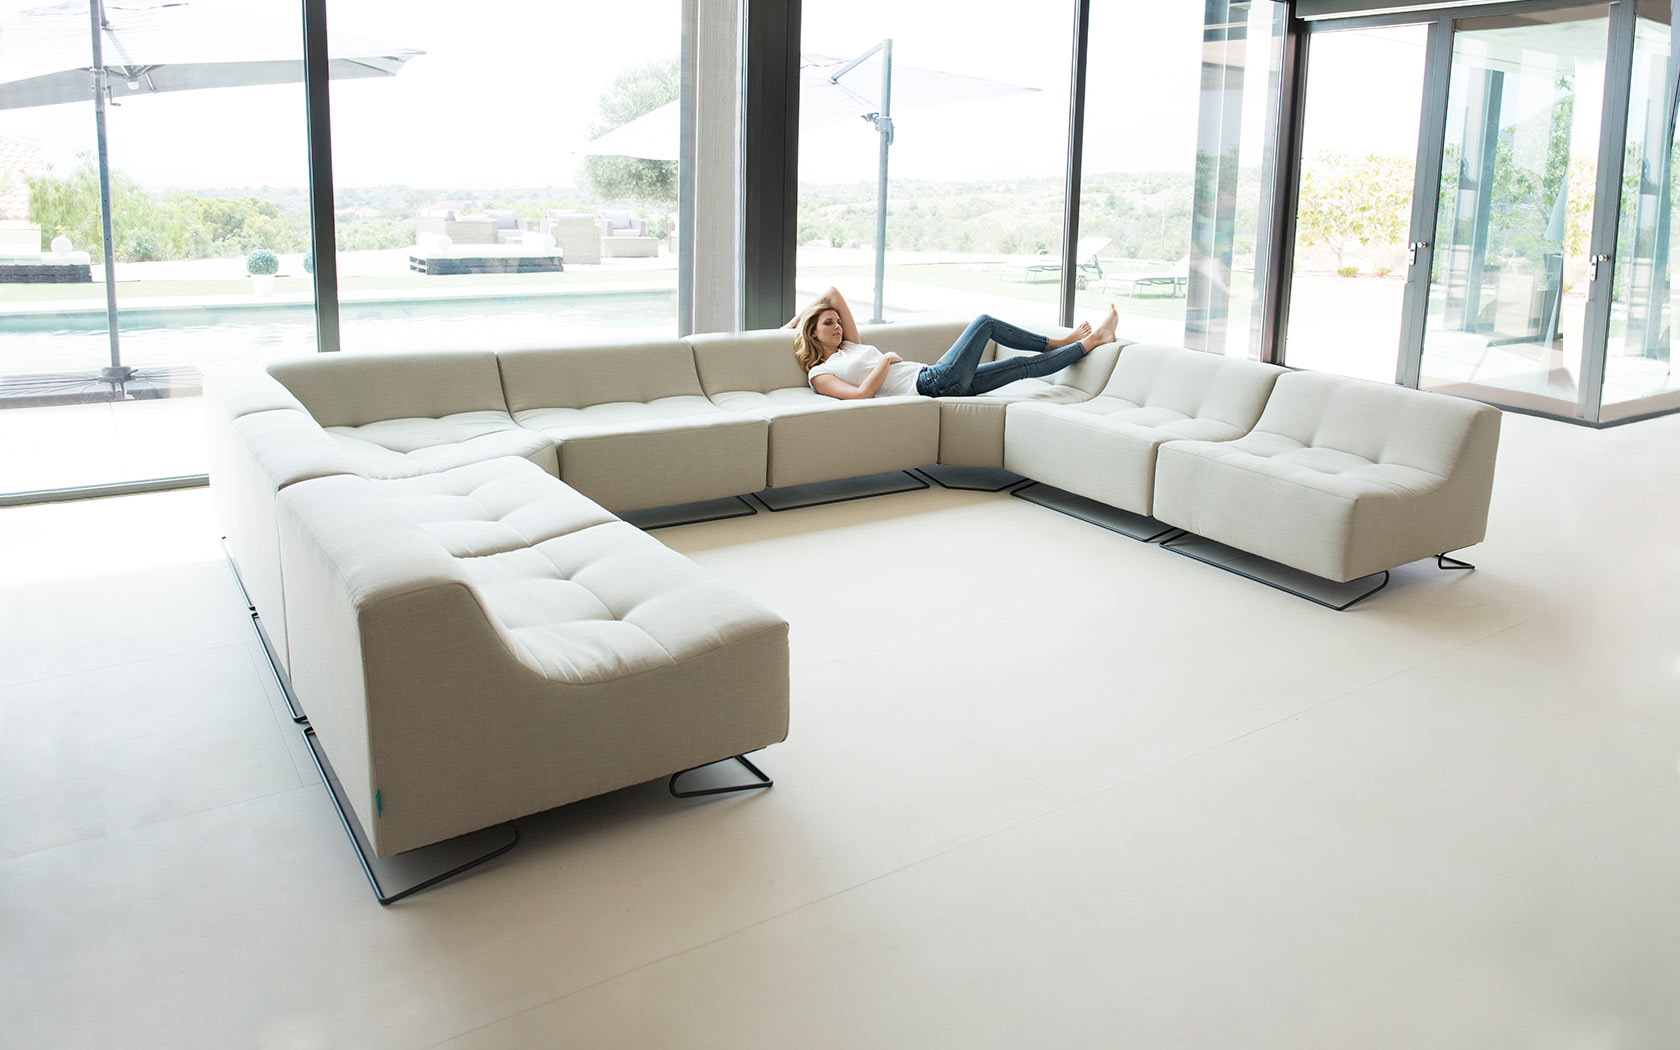 Luci Pop sofa fama 2019 09